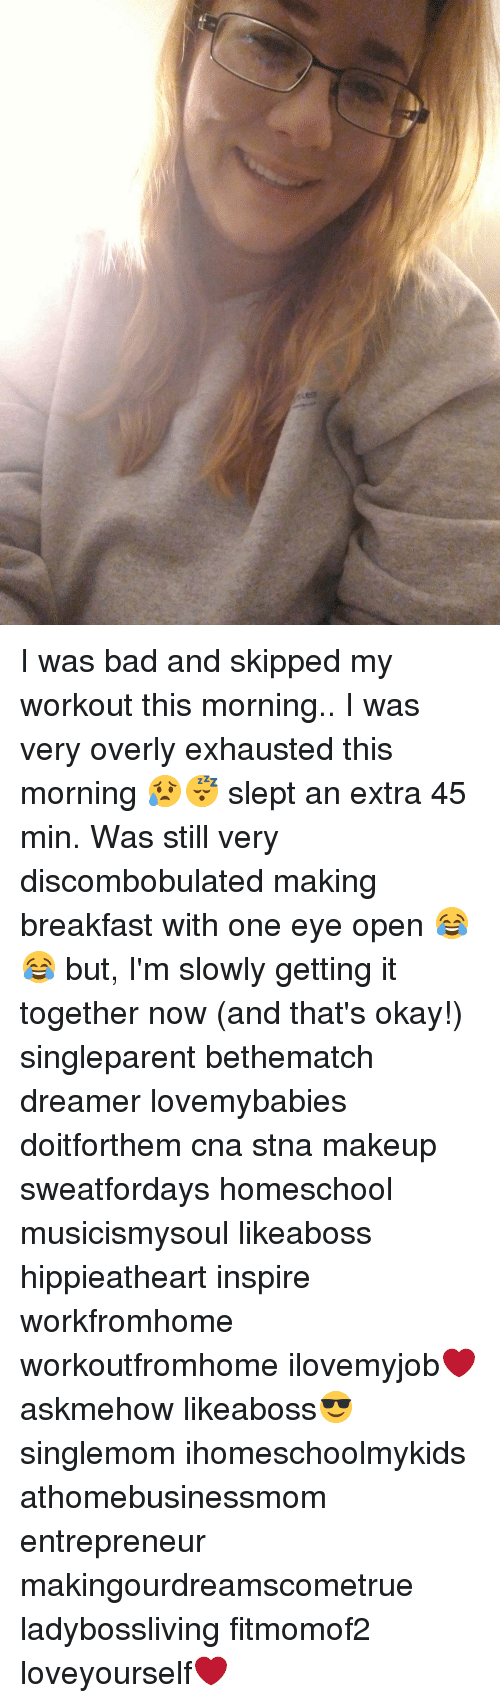 Memes breakfast and entrepreneur i was bad and skipped my workout this morning